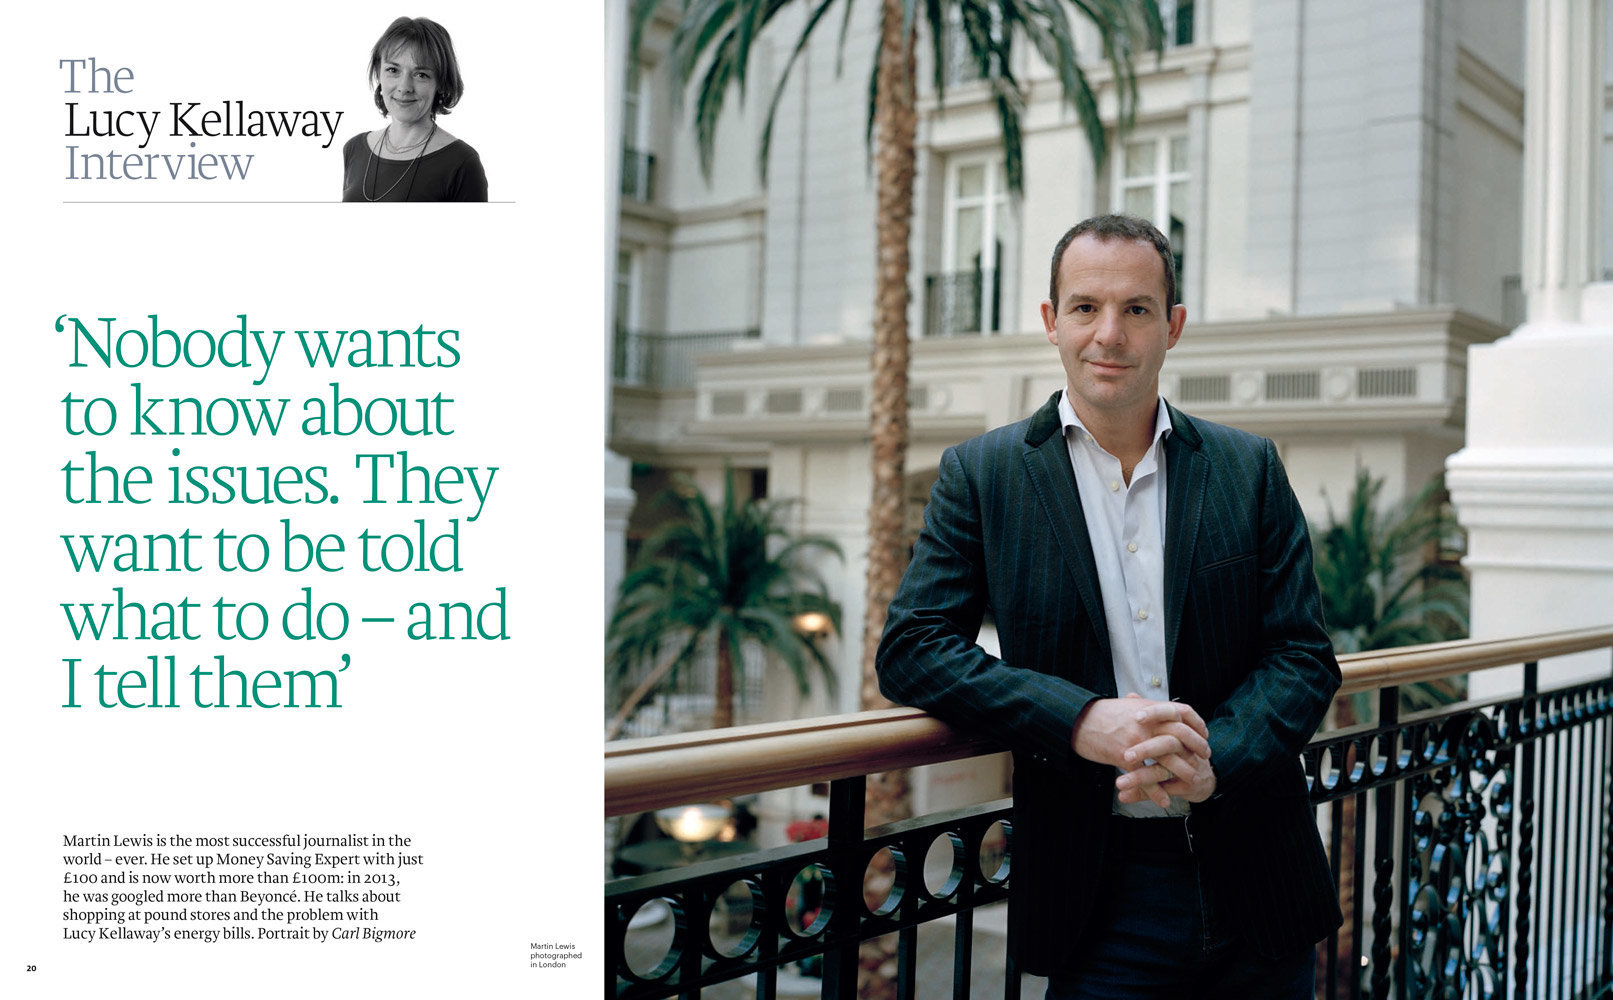 Martin Lewis, FT Weekend Magazine, 31st Oct/1st Nov 2015